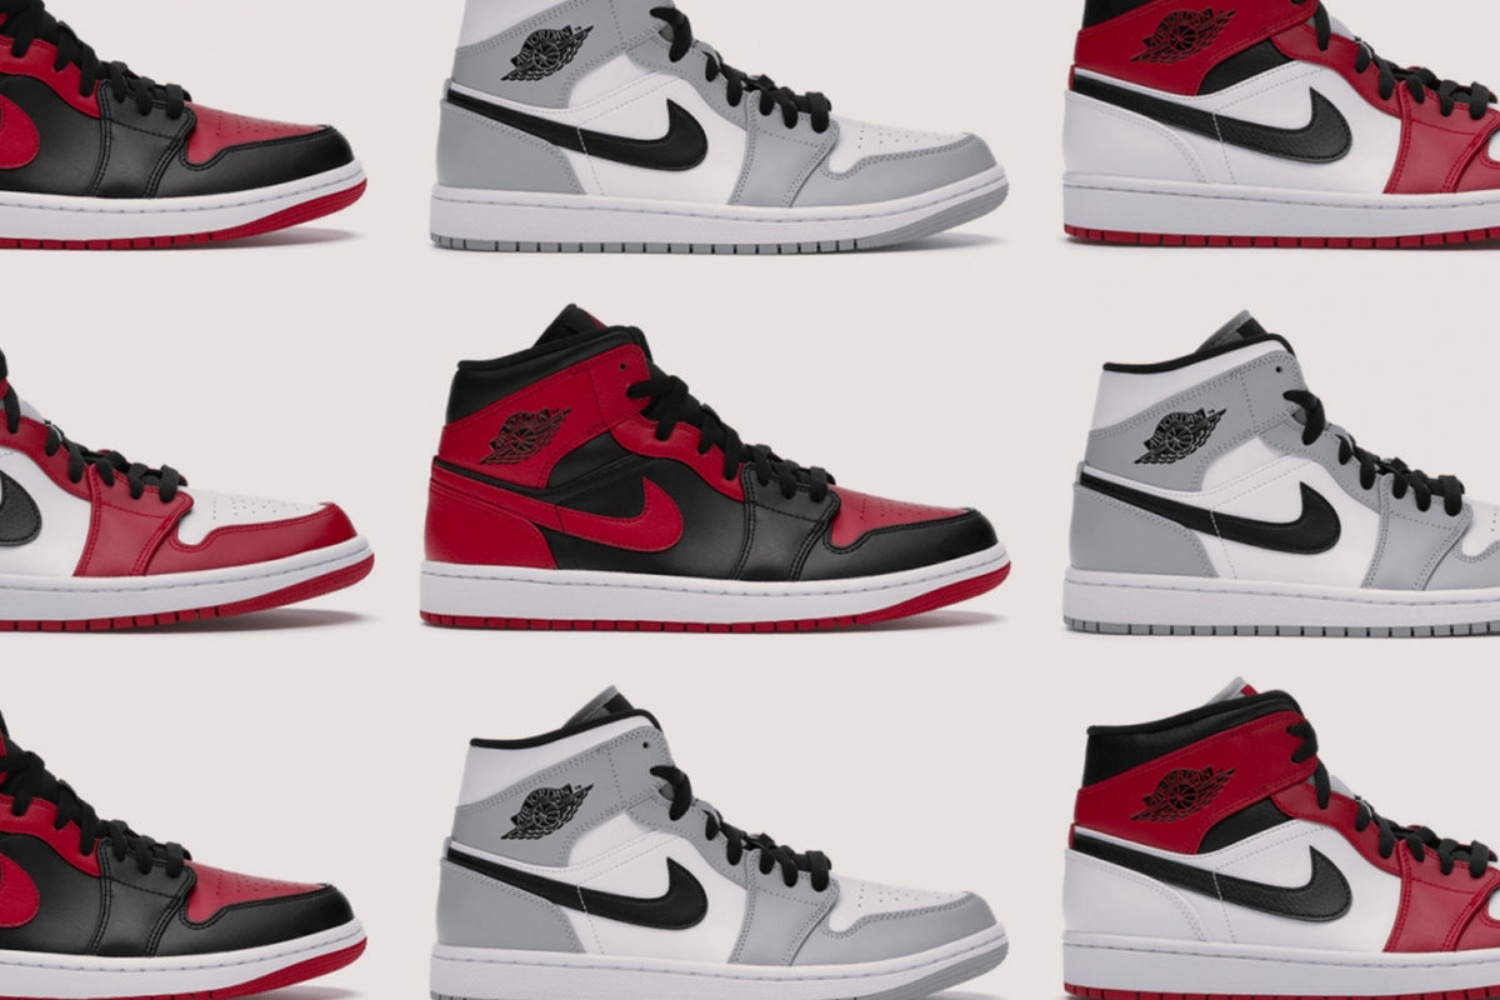 The Air Jordan 1 Mid is starting to take over the world 🗺️